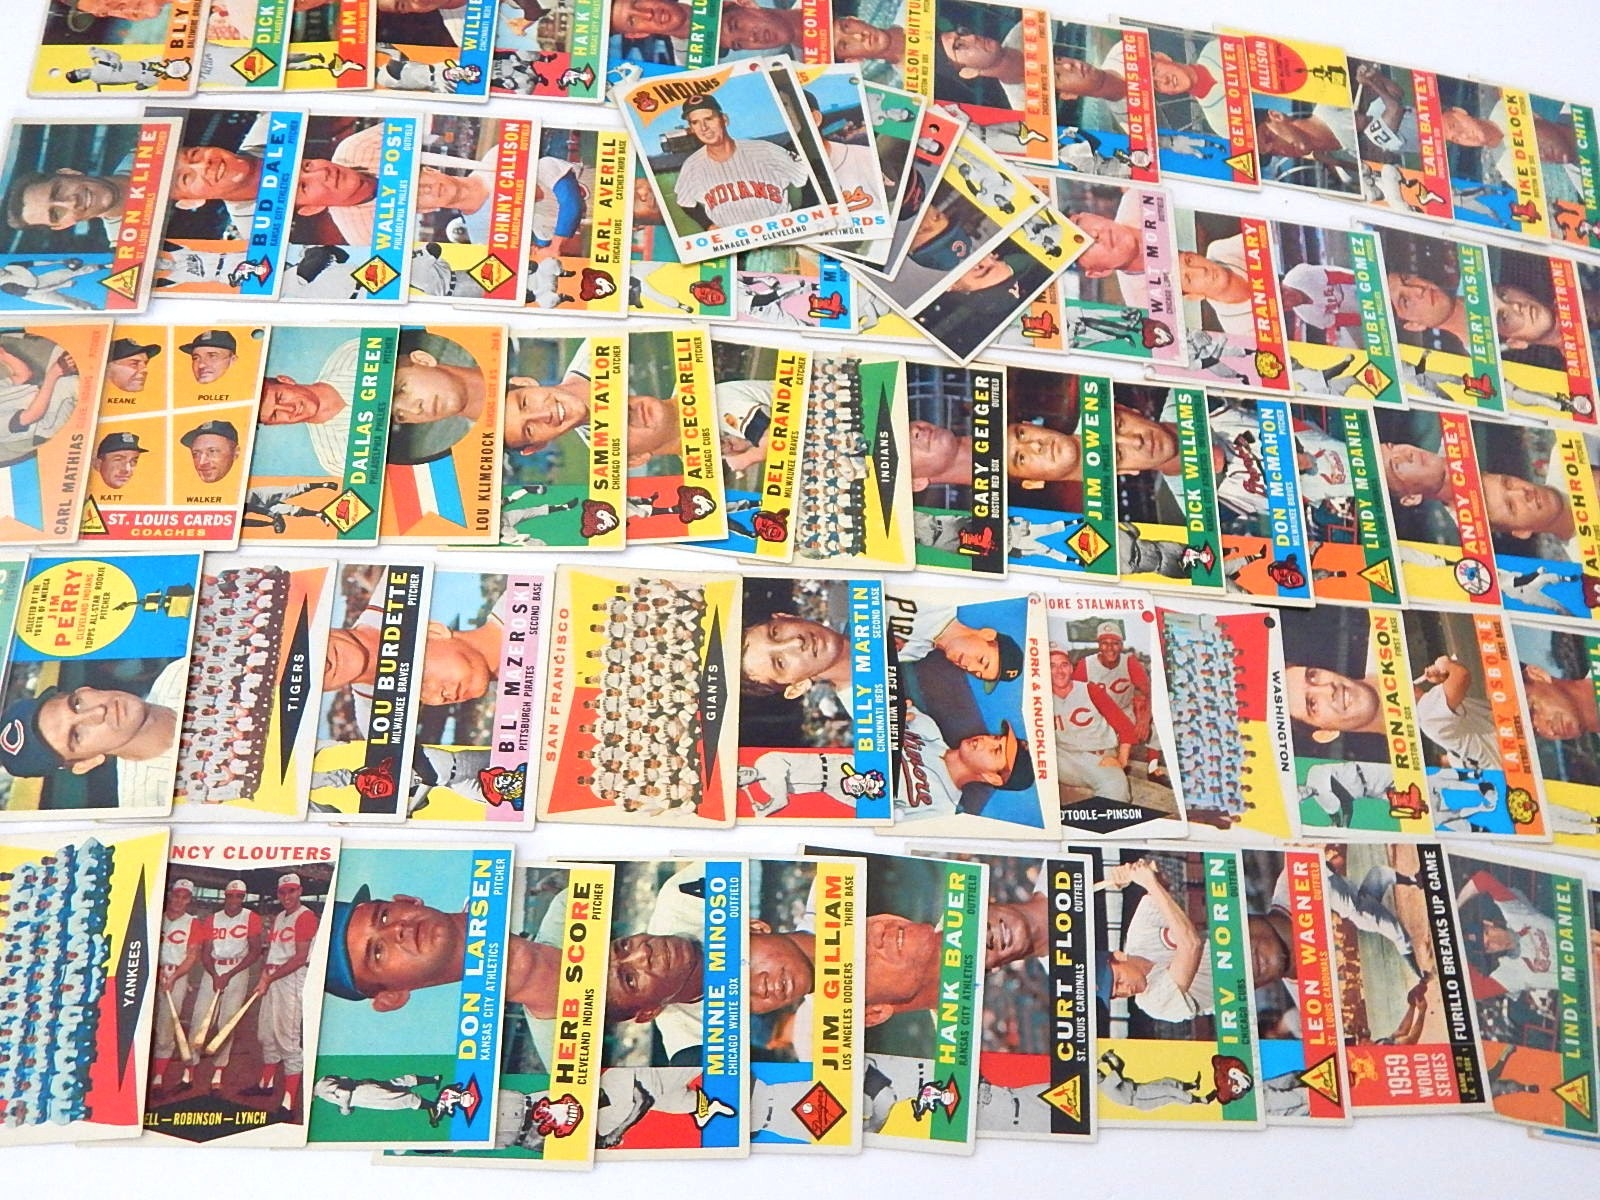 1960 Topps Baseball Cards - Over 80 Card Count